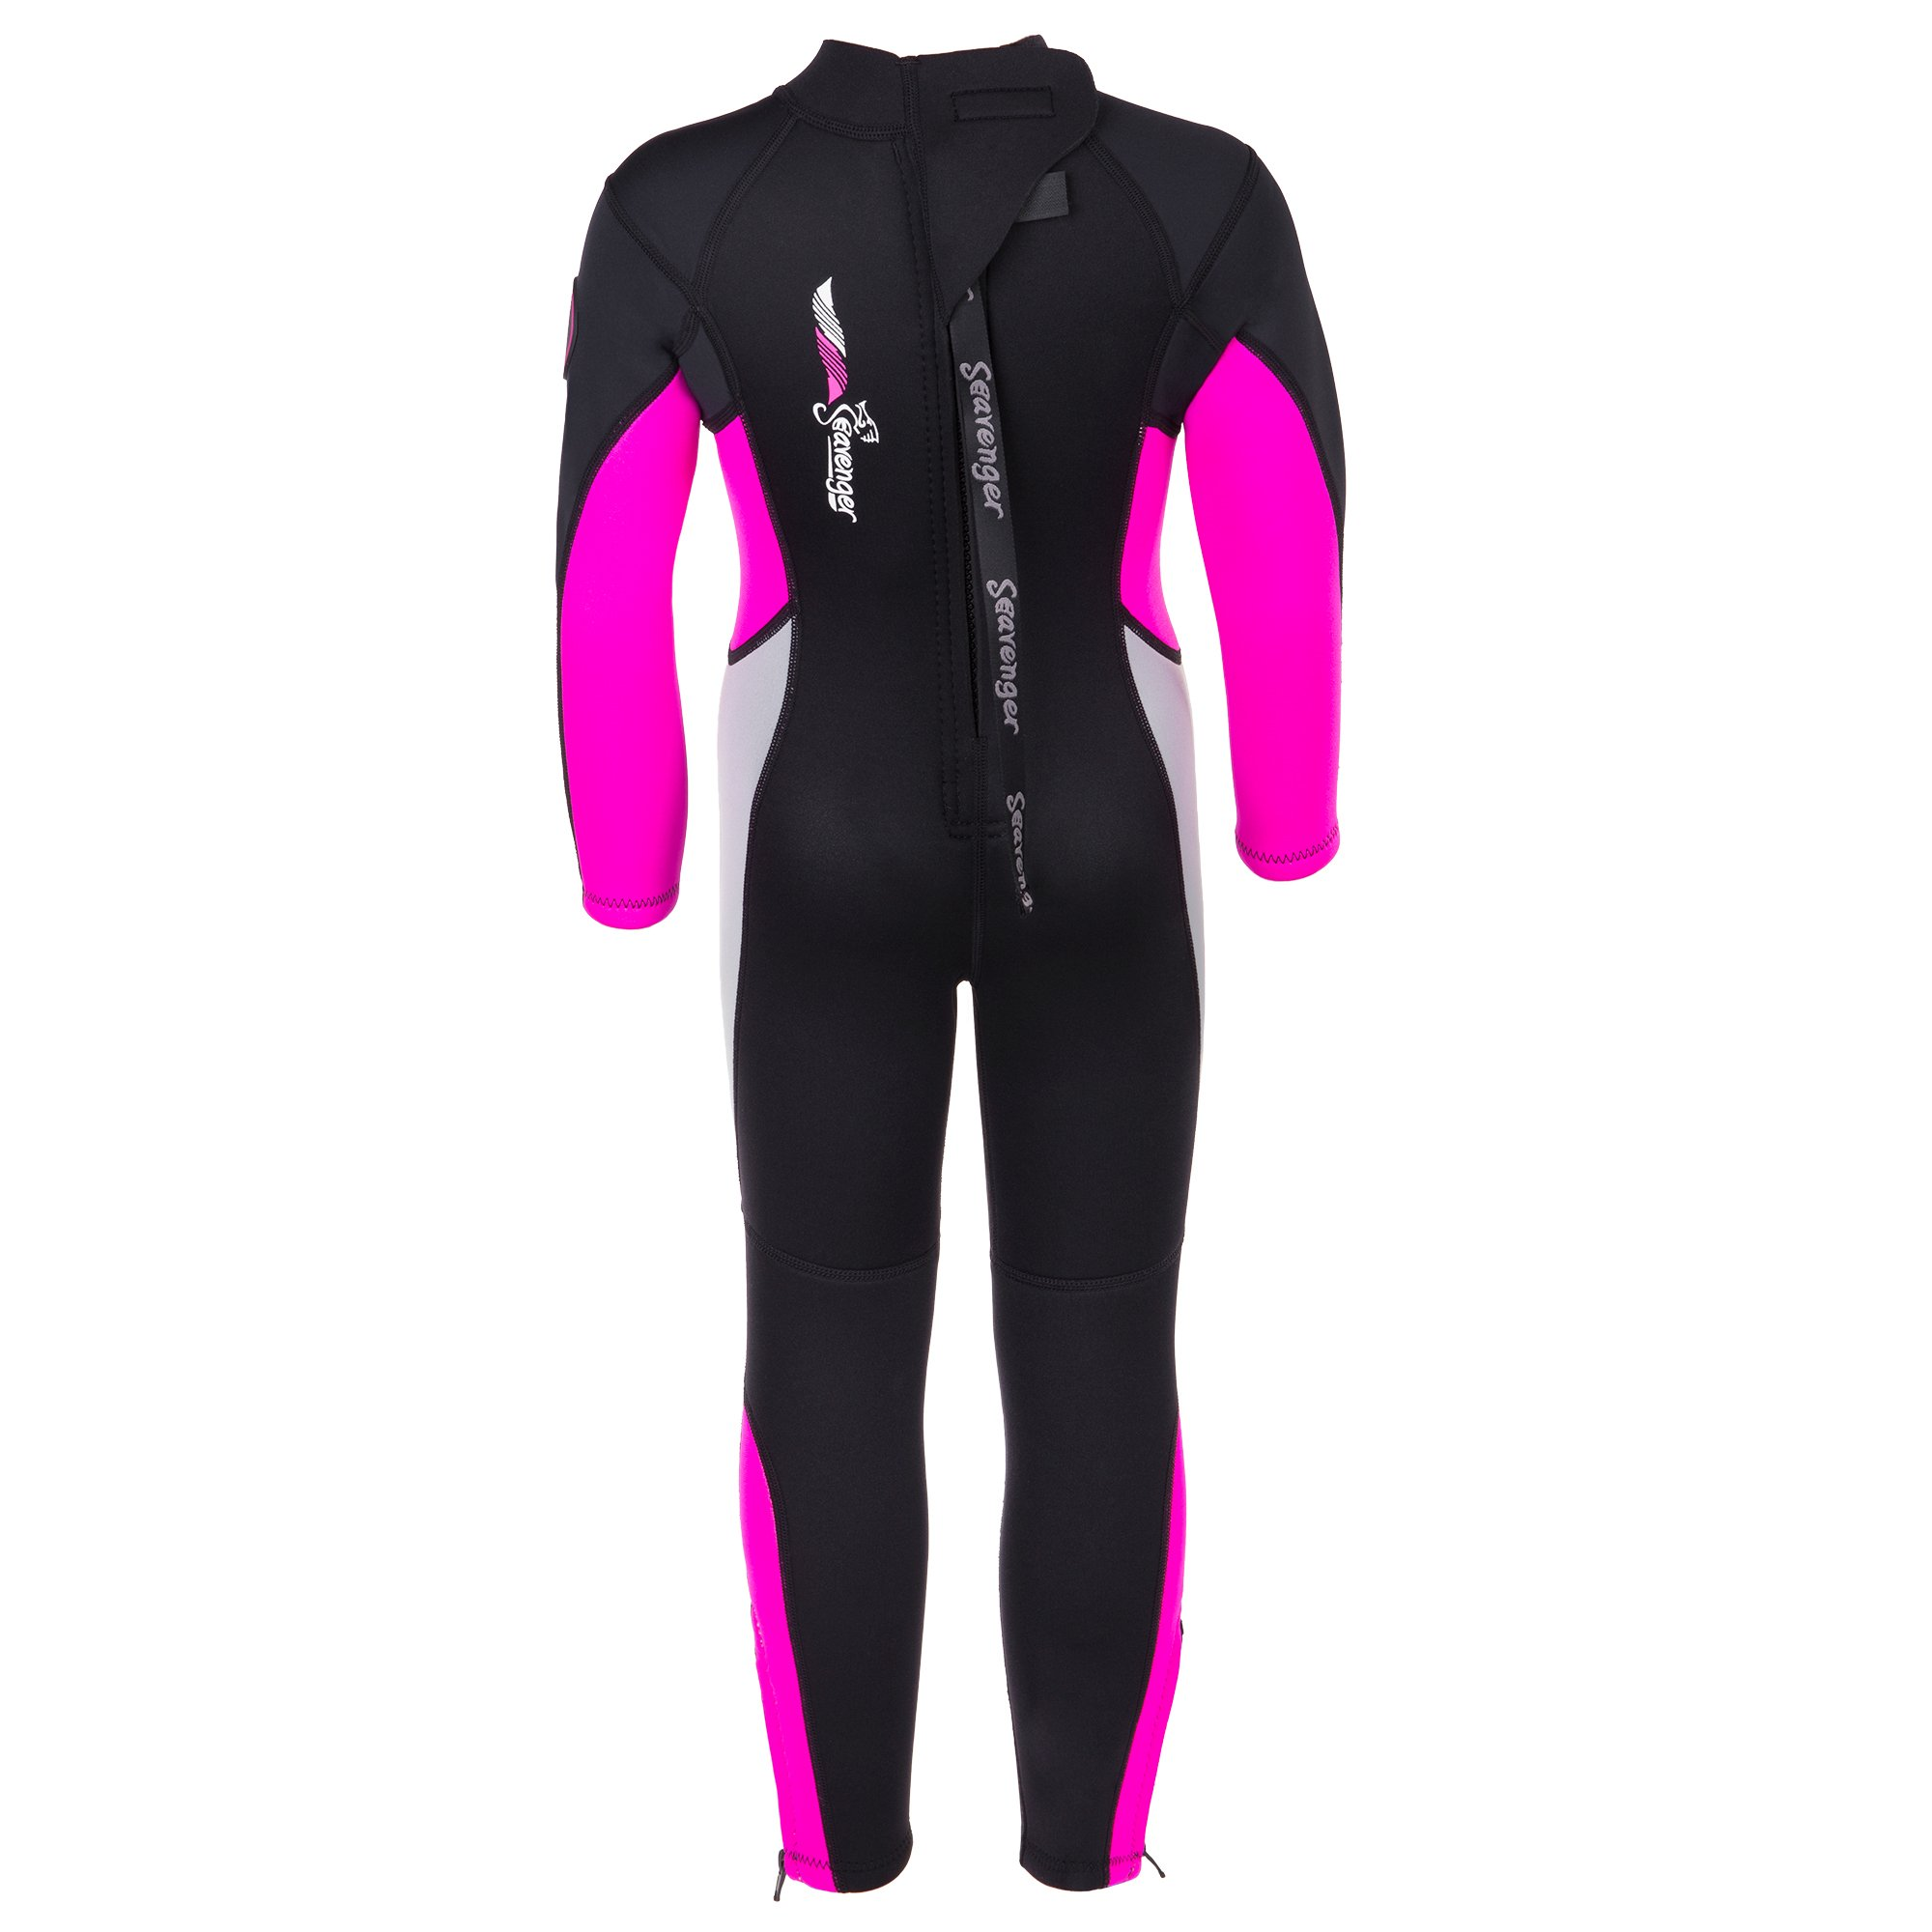 Seavenger Scout 3mm Kids Wetsuit | Full Body Neoprene Suit for Snorkeling, Swimming, Diving (Coral Pink, 6) by Seavenger (Image #3)